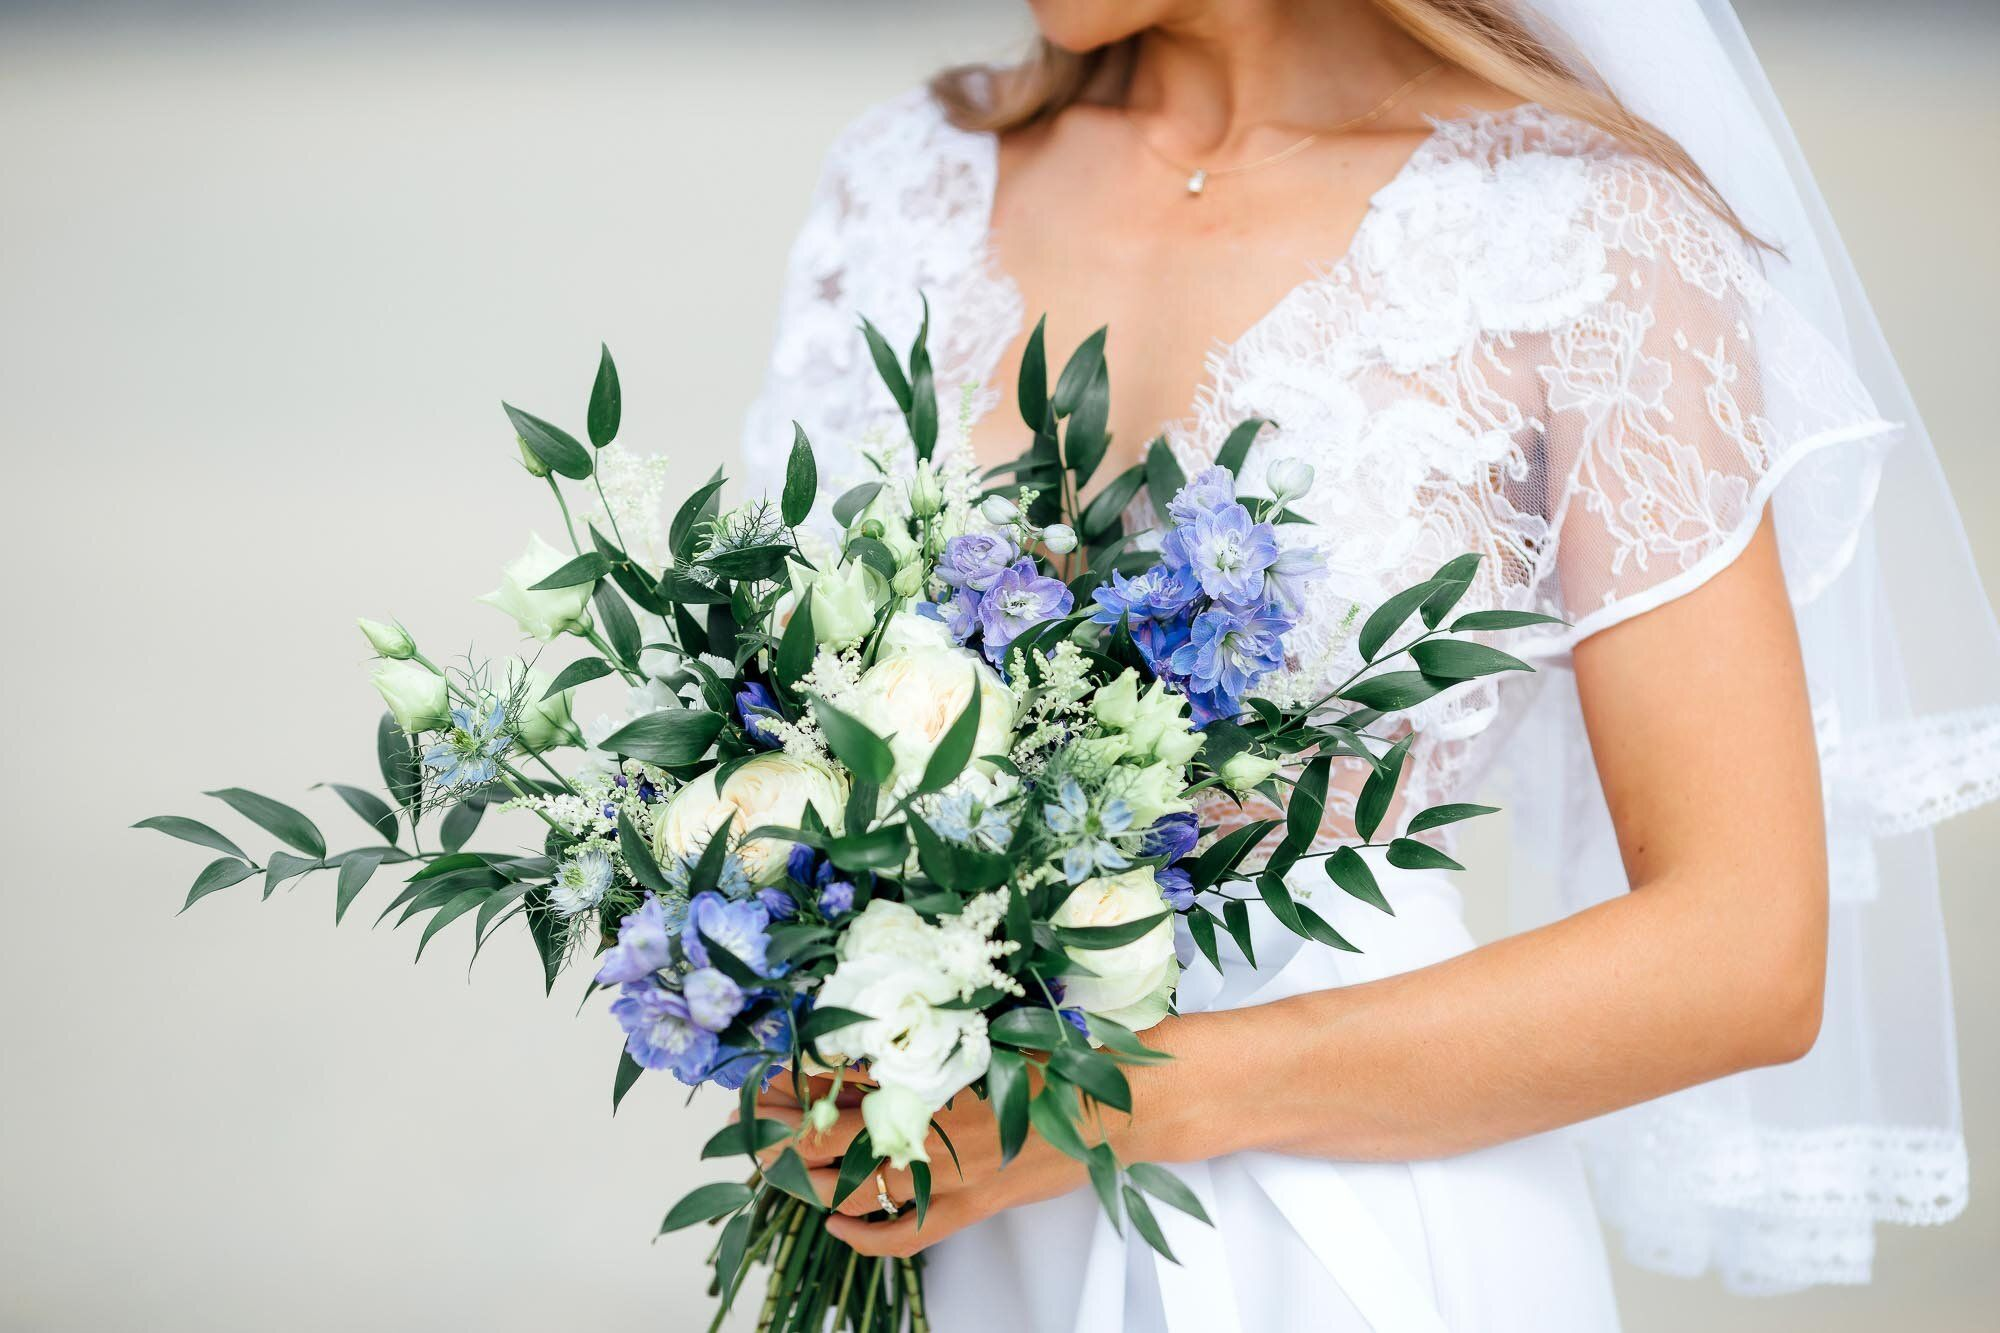 Pin On Photographe Mariage Geneve Lausanne Vaud Suisse